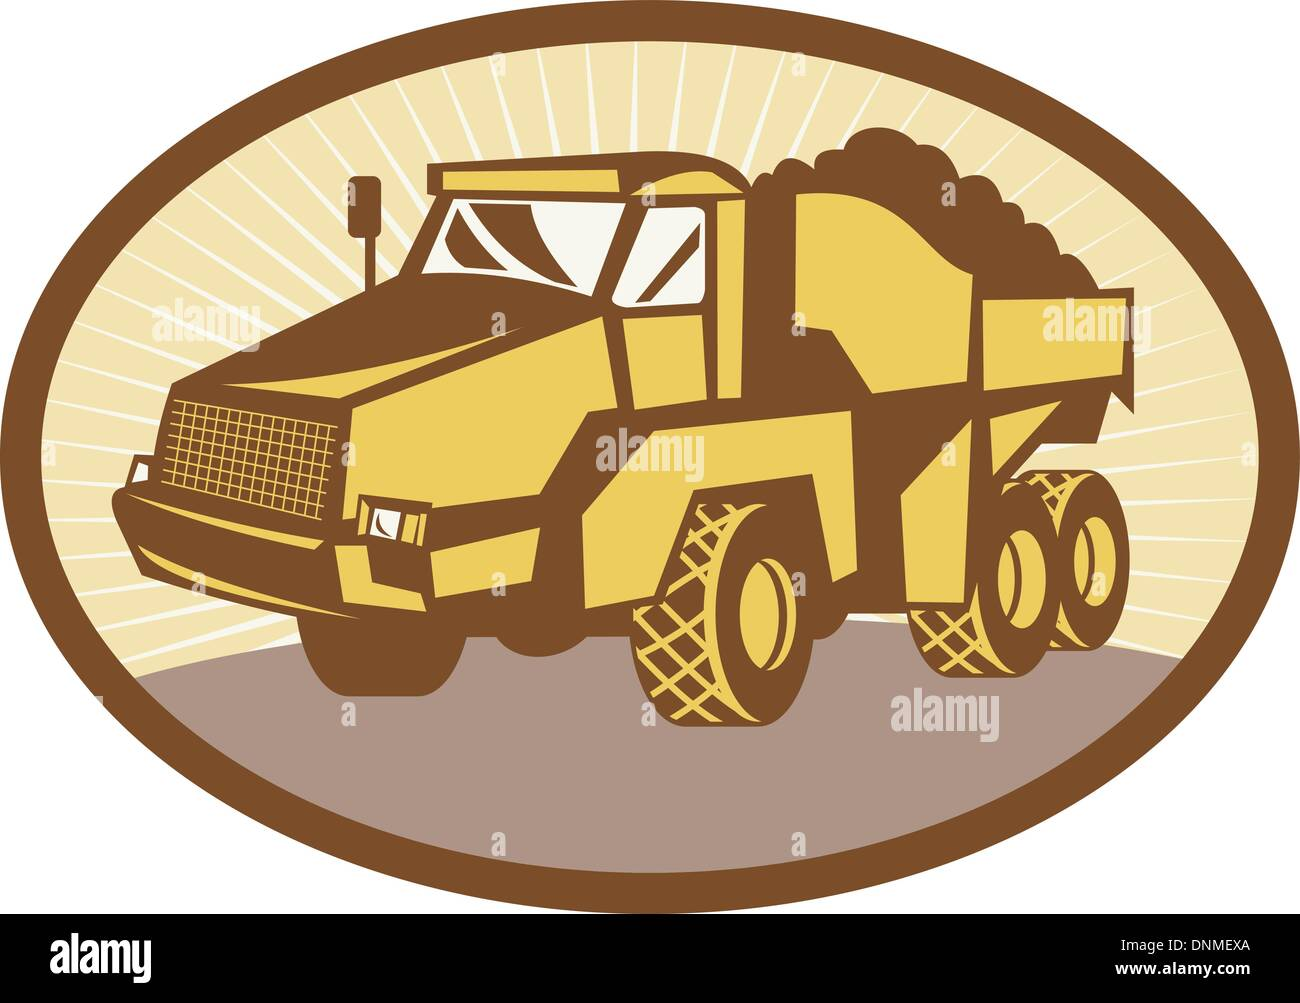 illustration of a mining Tipper dumper dump truck or lorry set inside an ovall done in retro woodcut style. - Stock Image